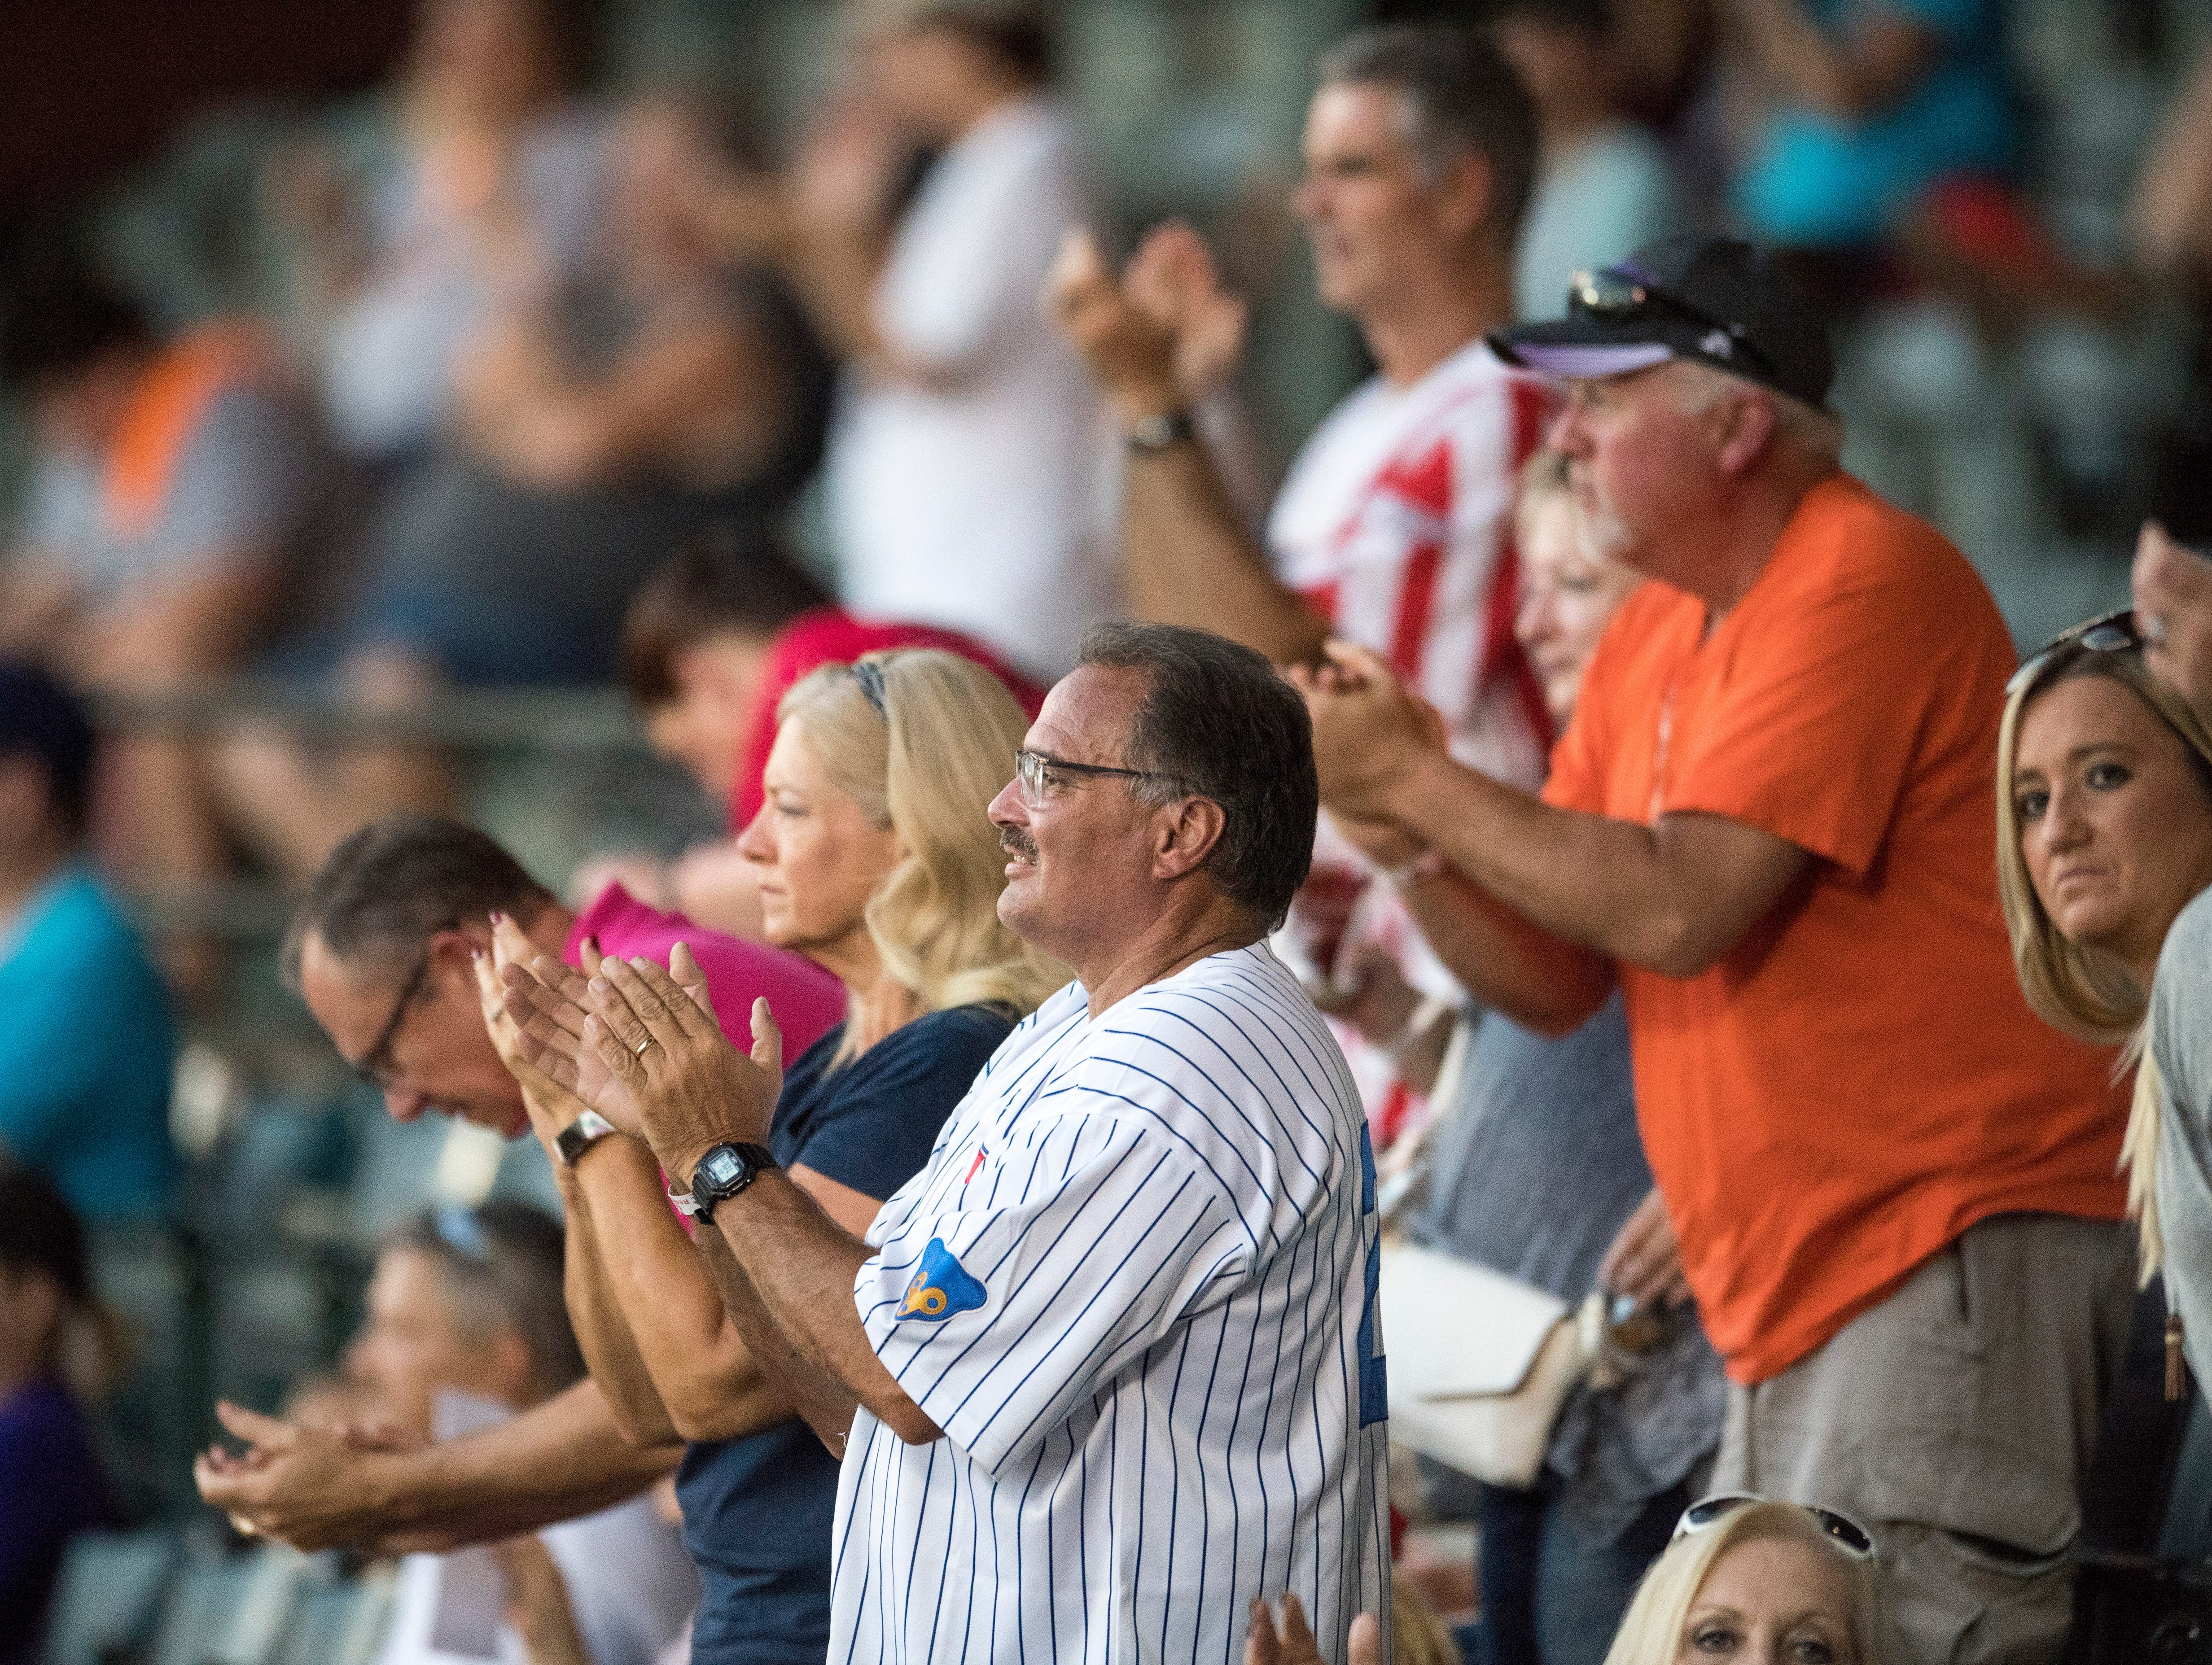 The fans stand and cheer on the Evansville Otters during game two of the Frontier League Division Series at Bosse Field against the Washington Wild Things Wednesday, September 5, 2018.